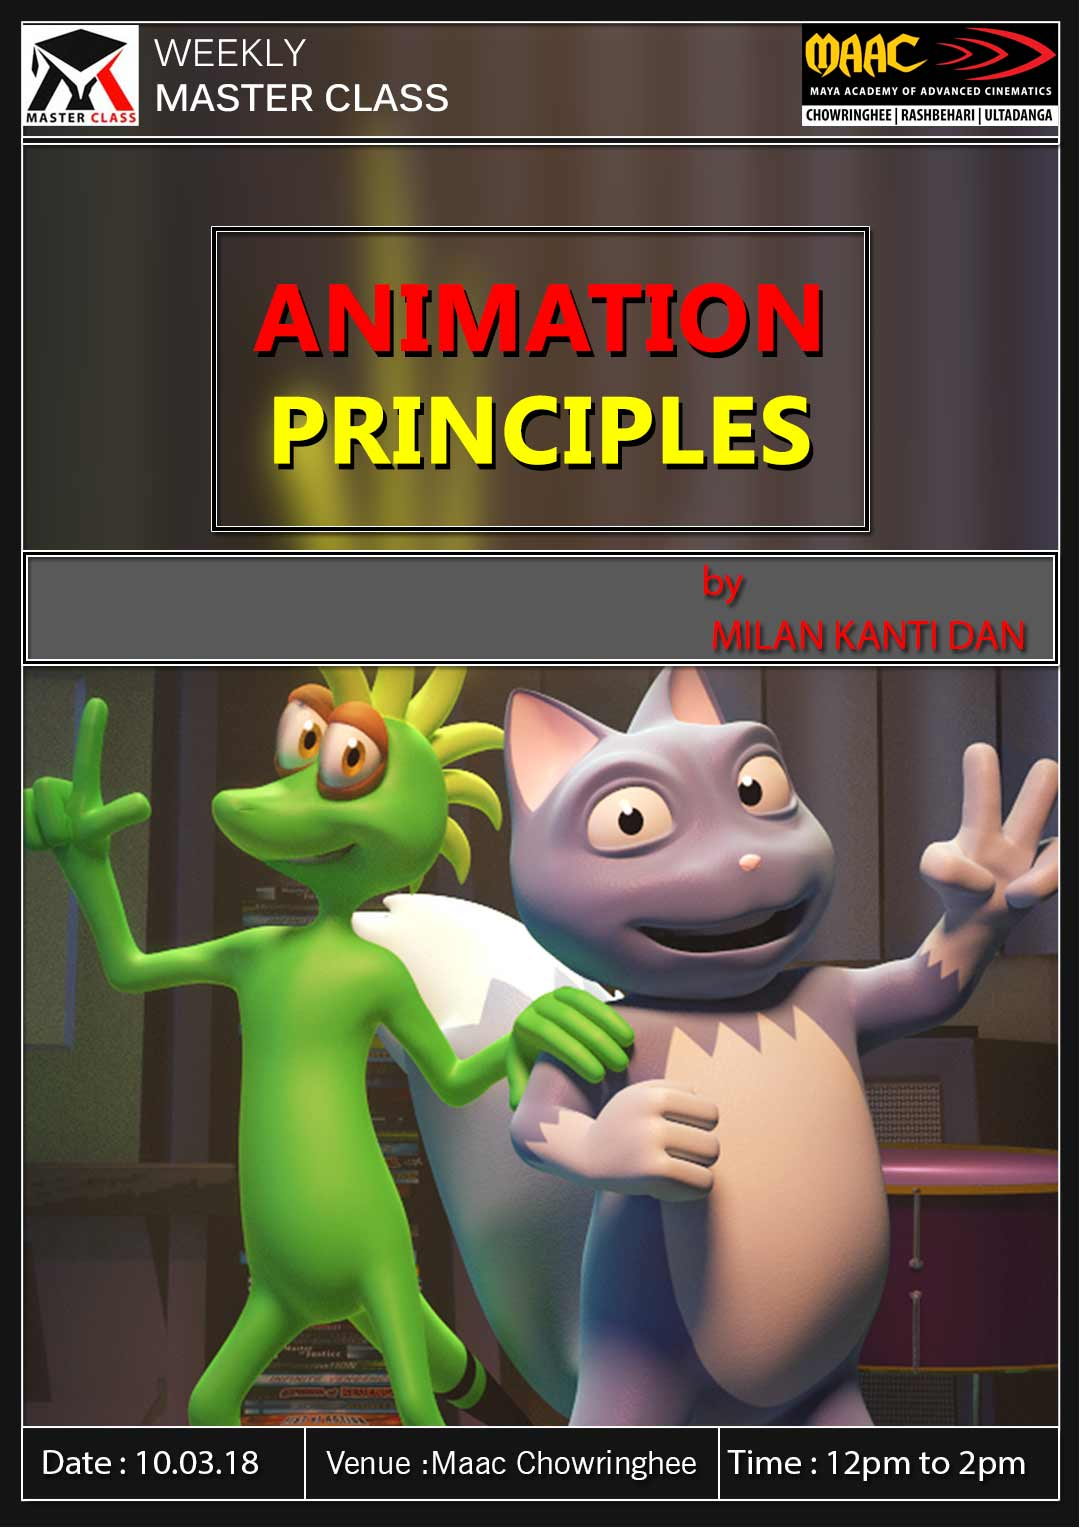 Weekly Master Class on Animation Principles